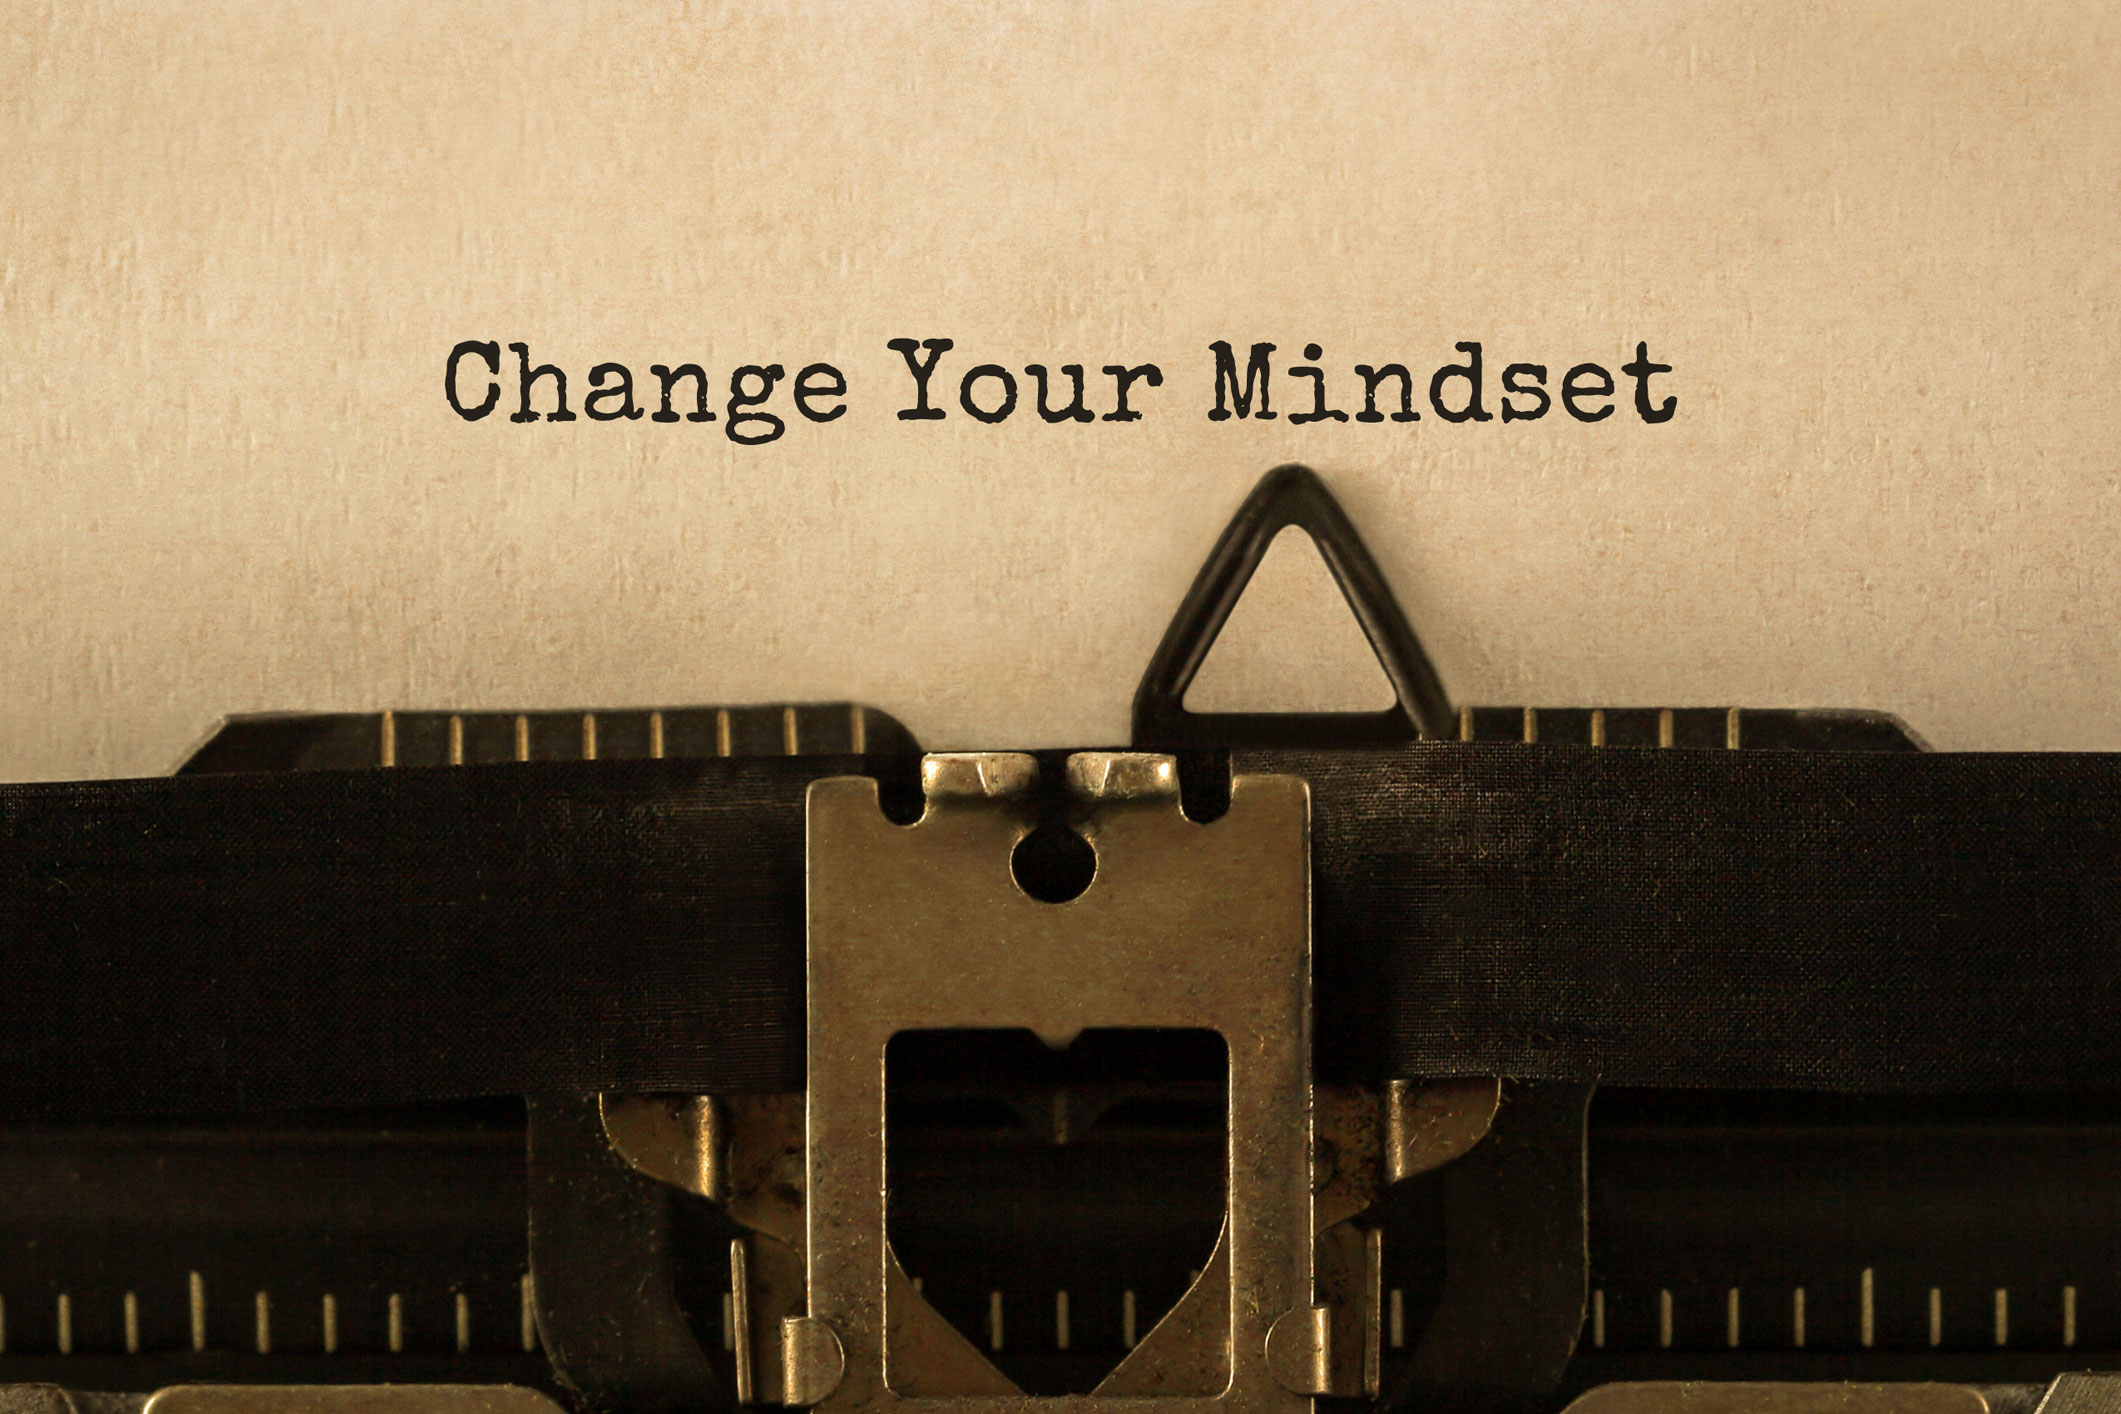 Paper on typewriter with the words 'Change Your Mindset' typed